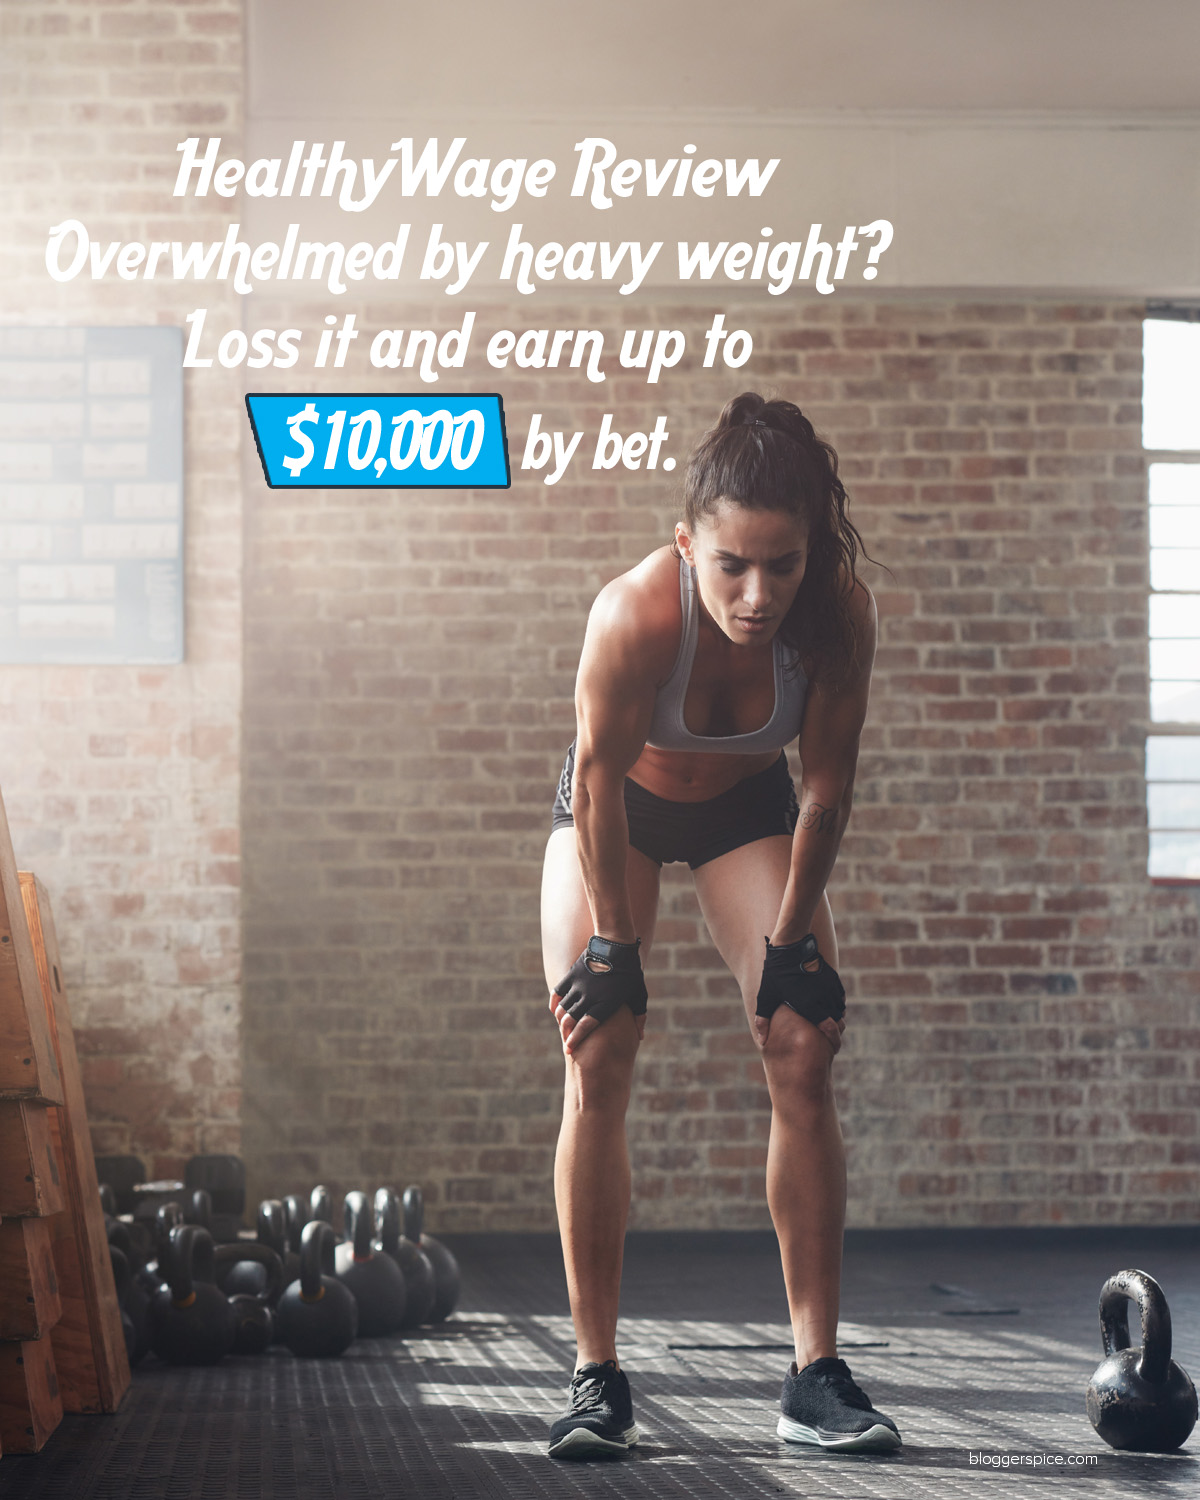 Overwhelmed by heavy weight? Loss it with healthwage and earn up to $10,000 by bet.